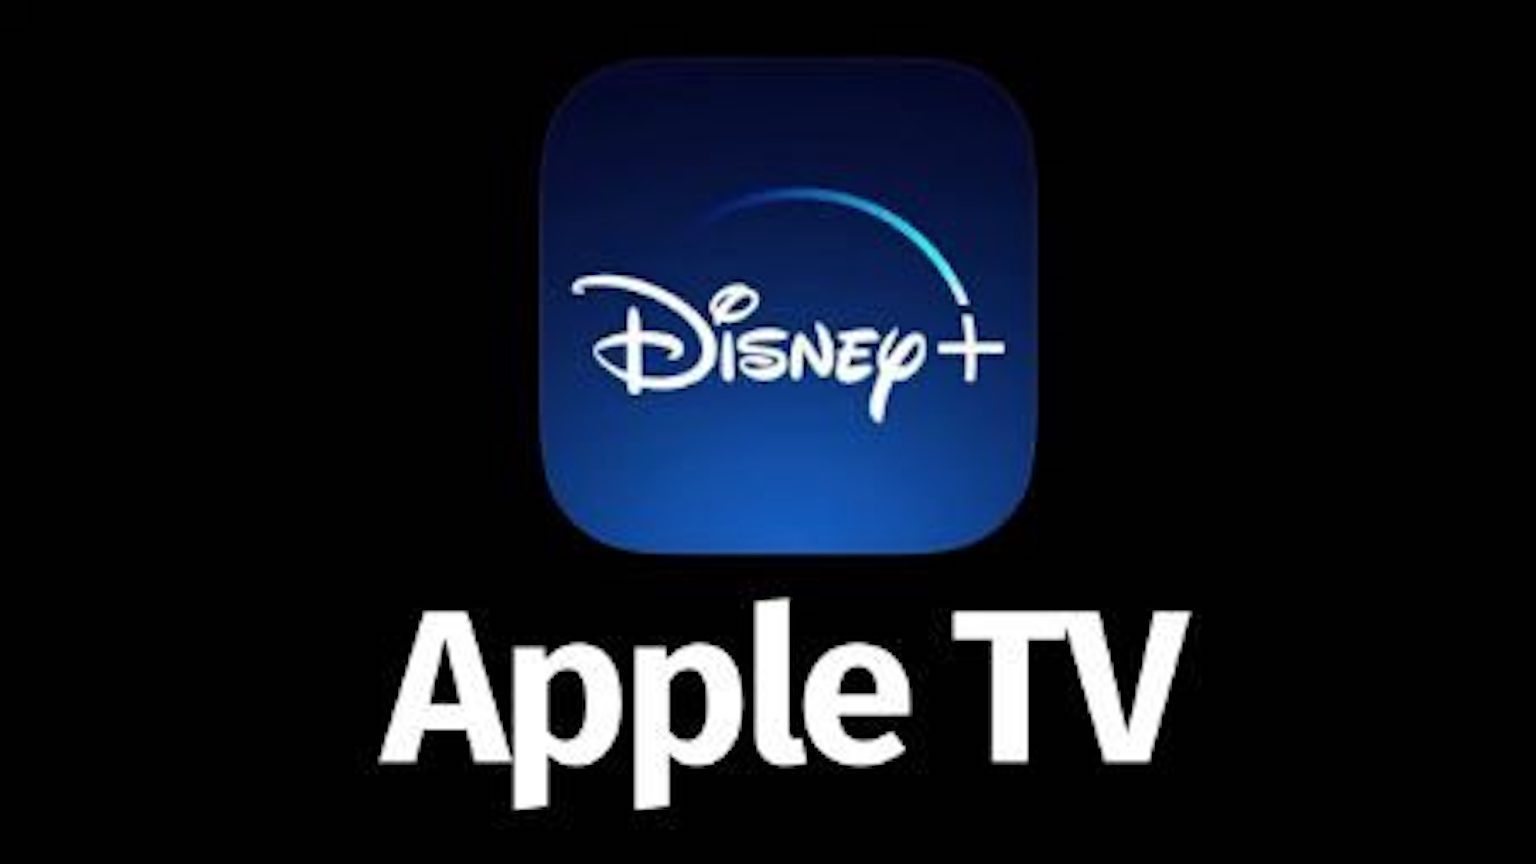 Apple TV and want to watch Disney+